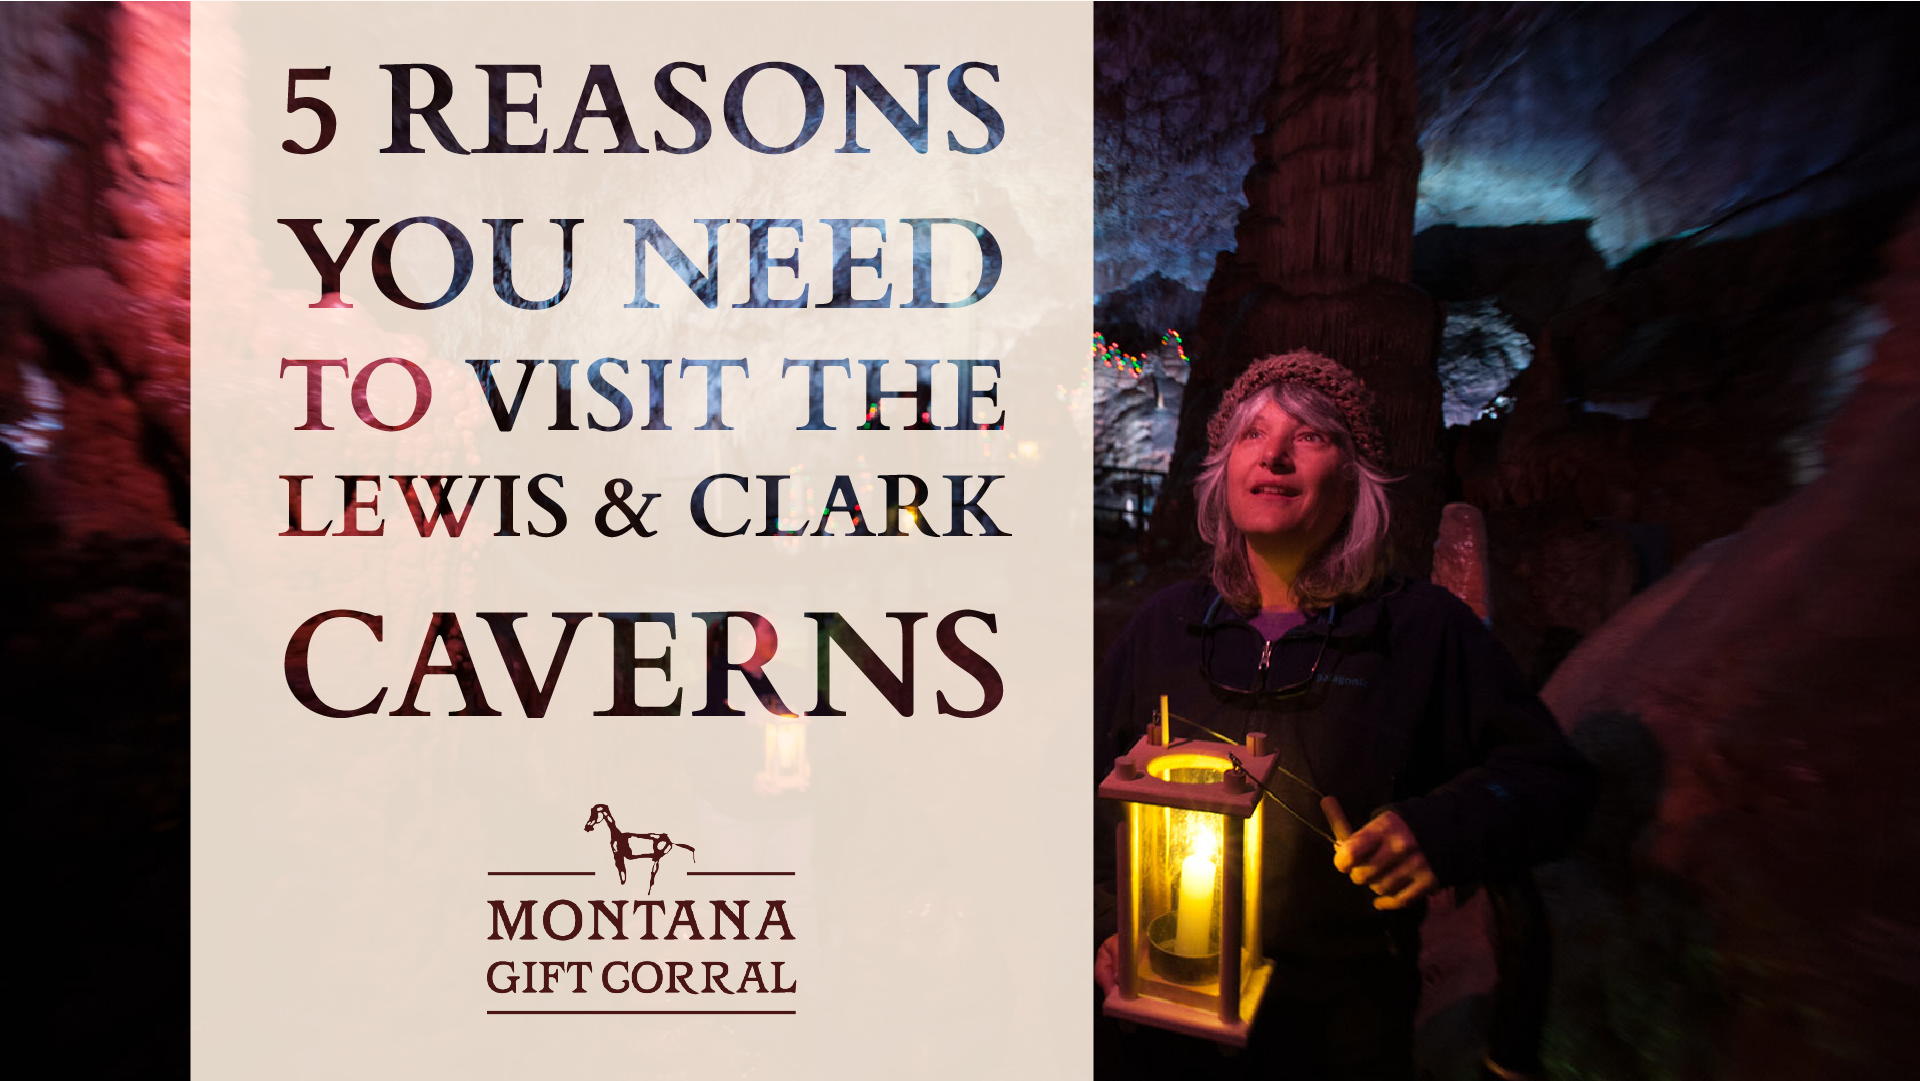 5 Reasons You Need to Visit Lewis & Clark Caverns State Park